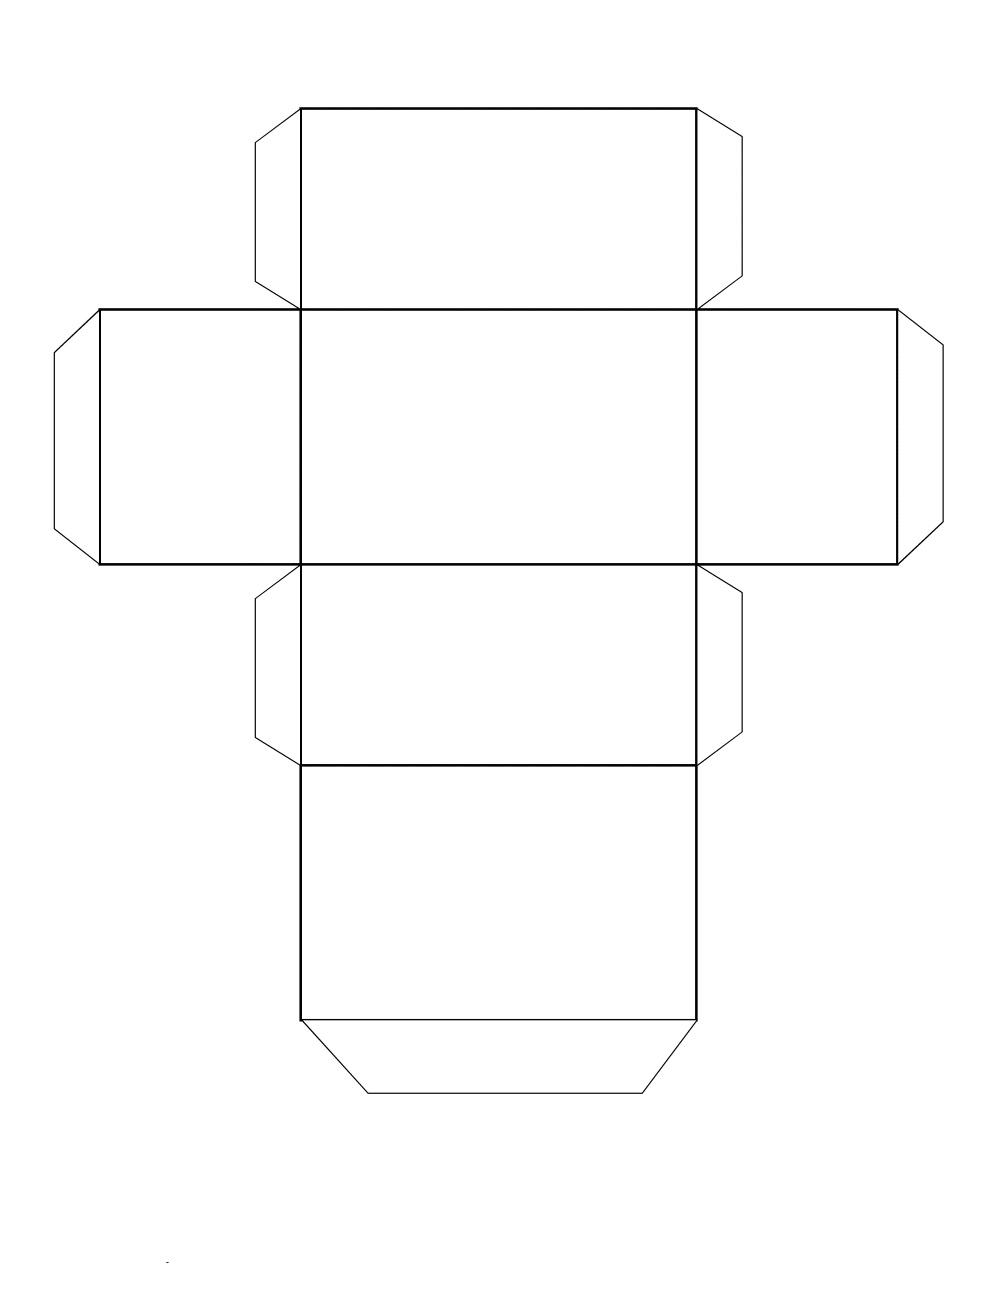 how to draw a rectangular prism on isometric dot paper